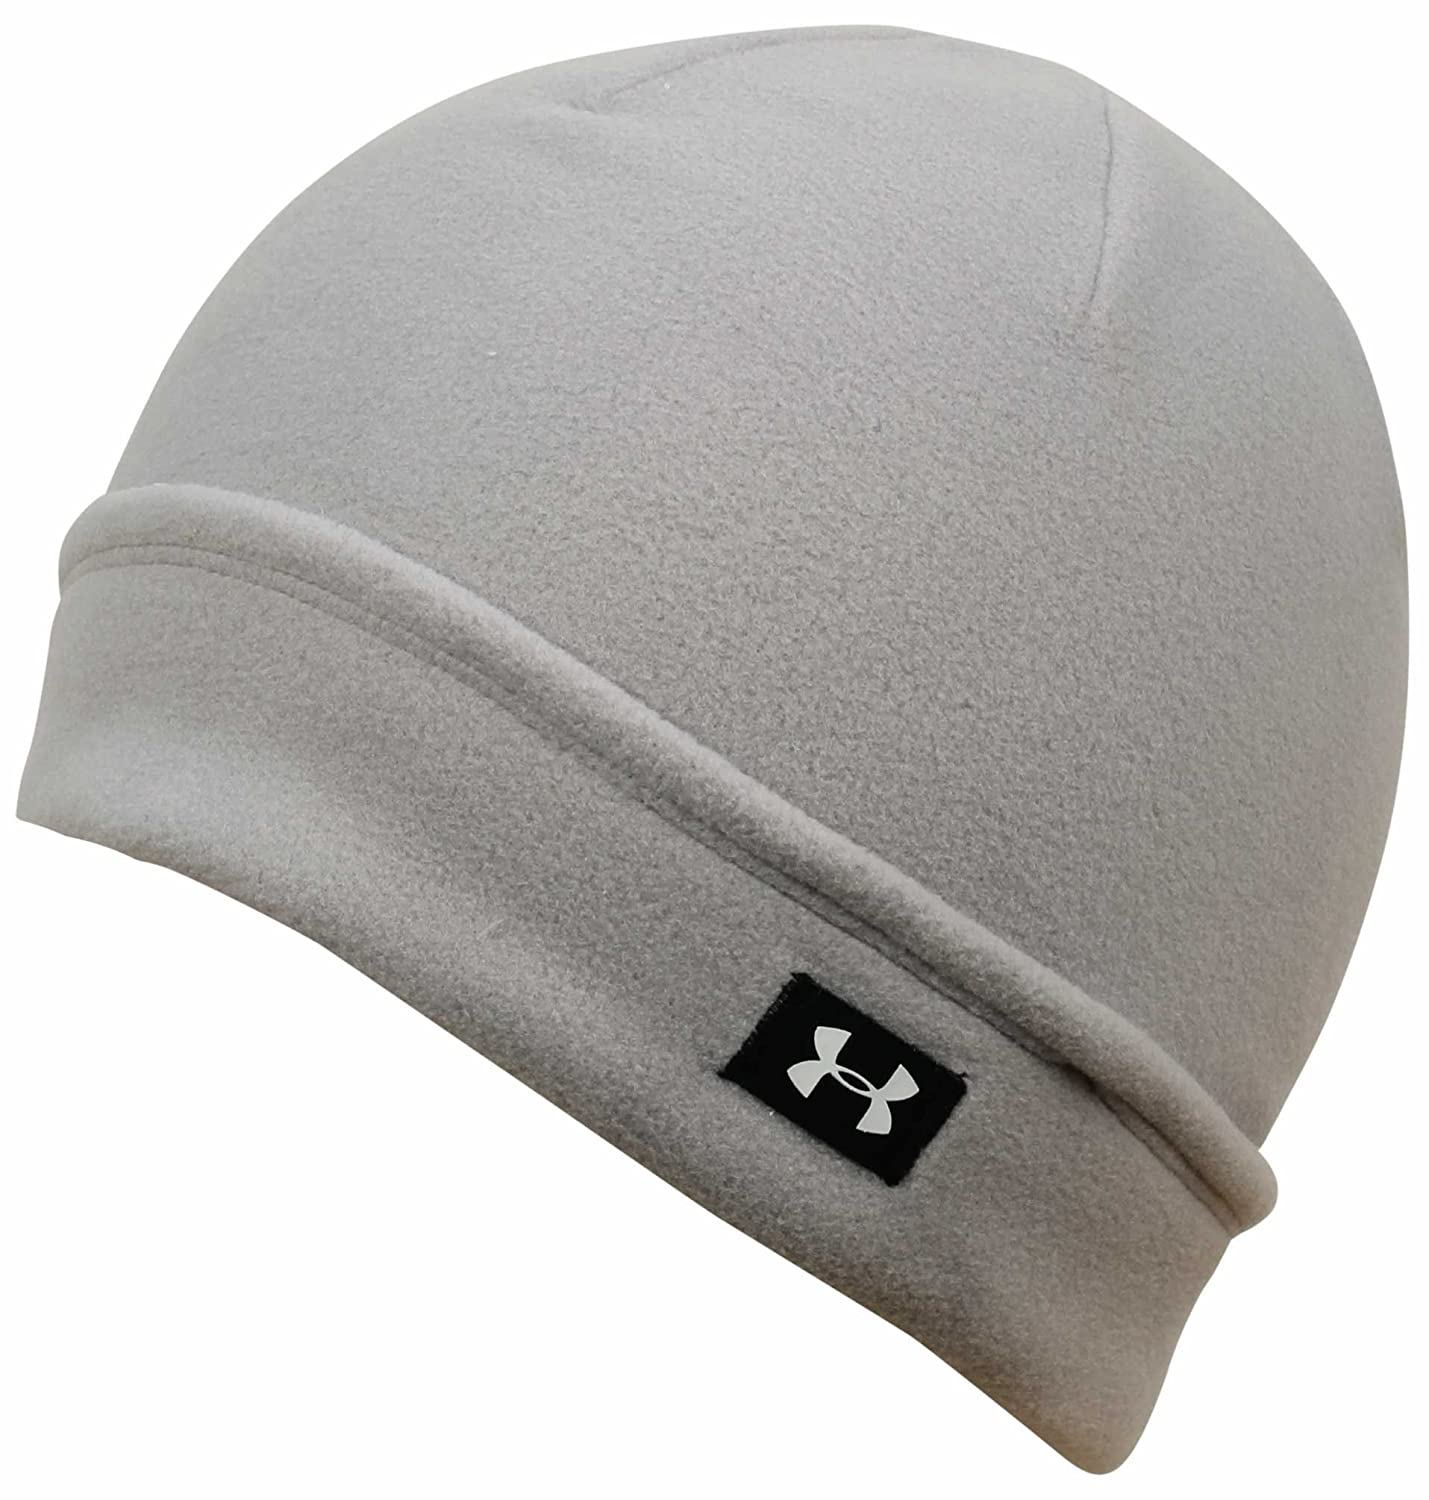 e863c253c90 Amazon.com  Under Armour Cozy Fleece Beanie - Boulder White  Sports    Outdoors